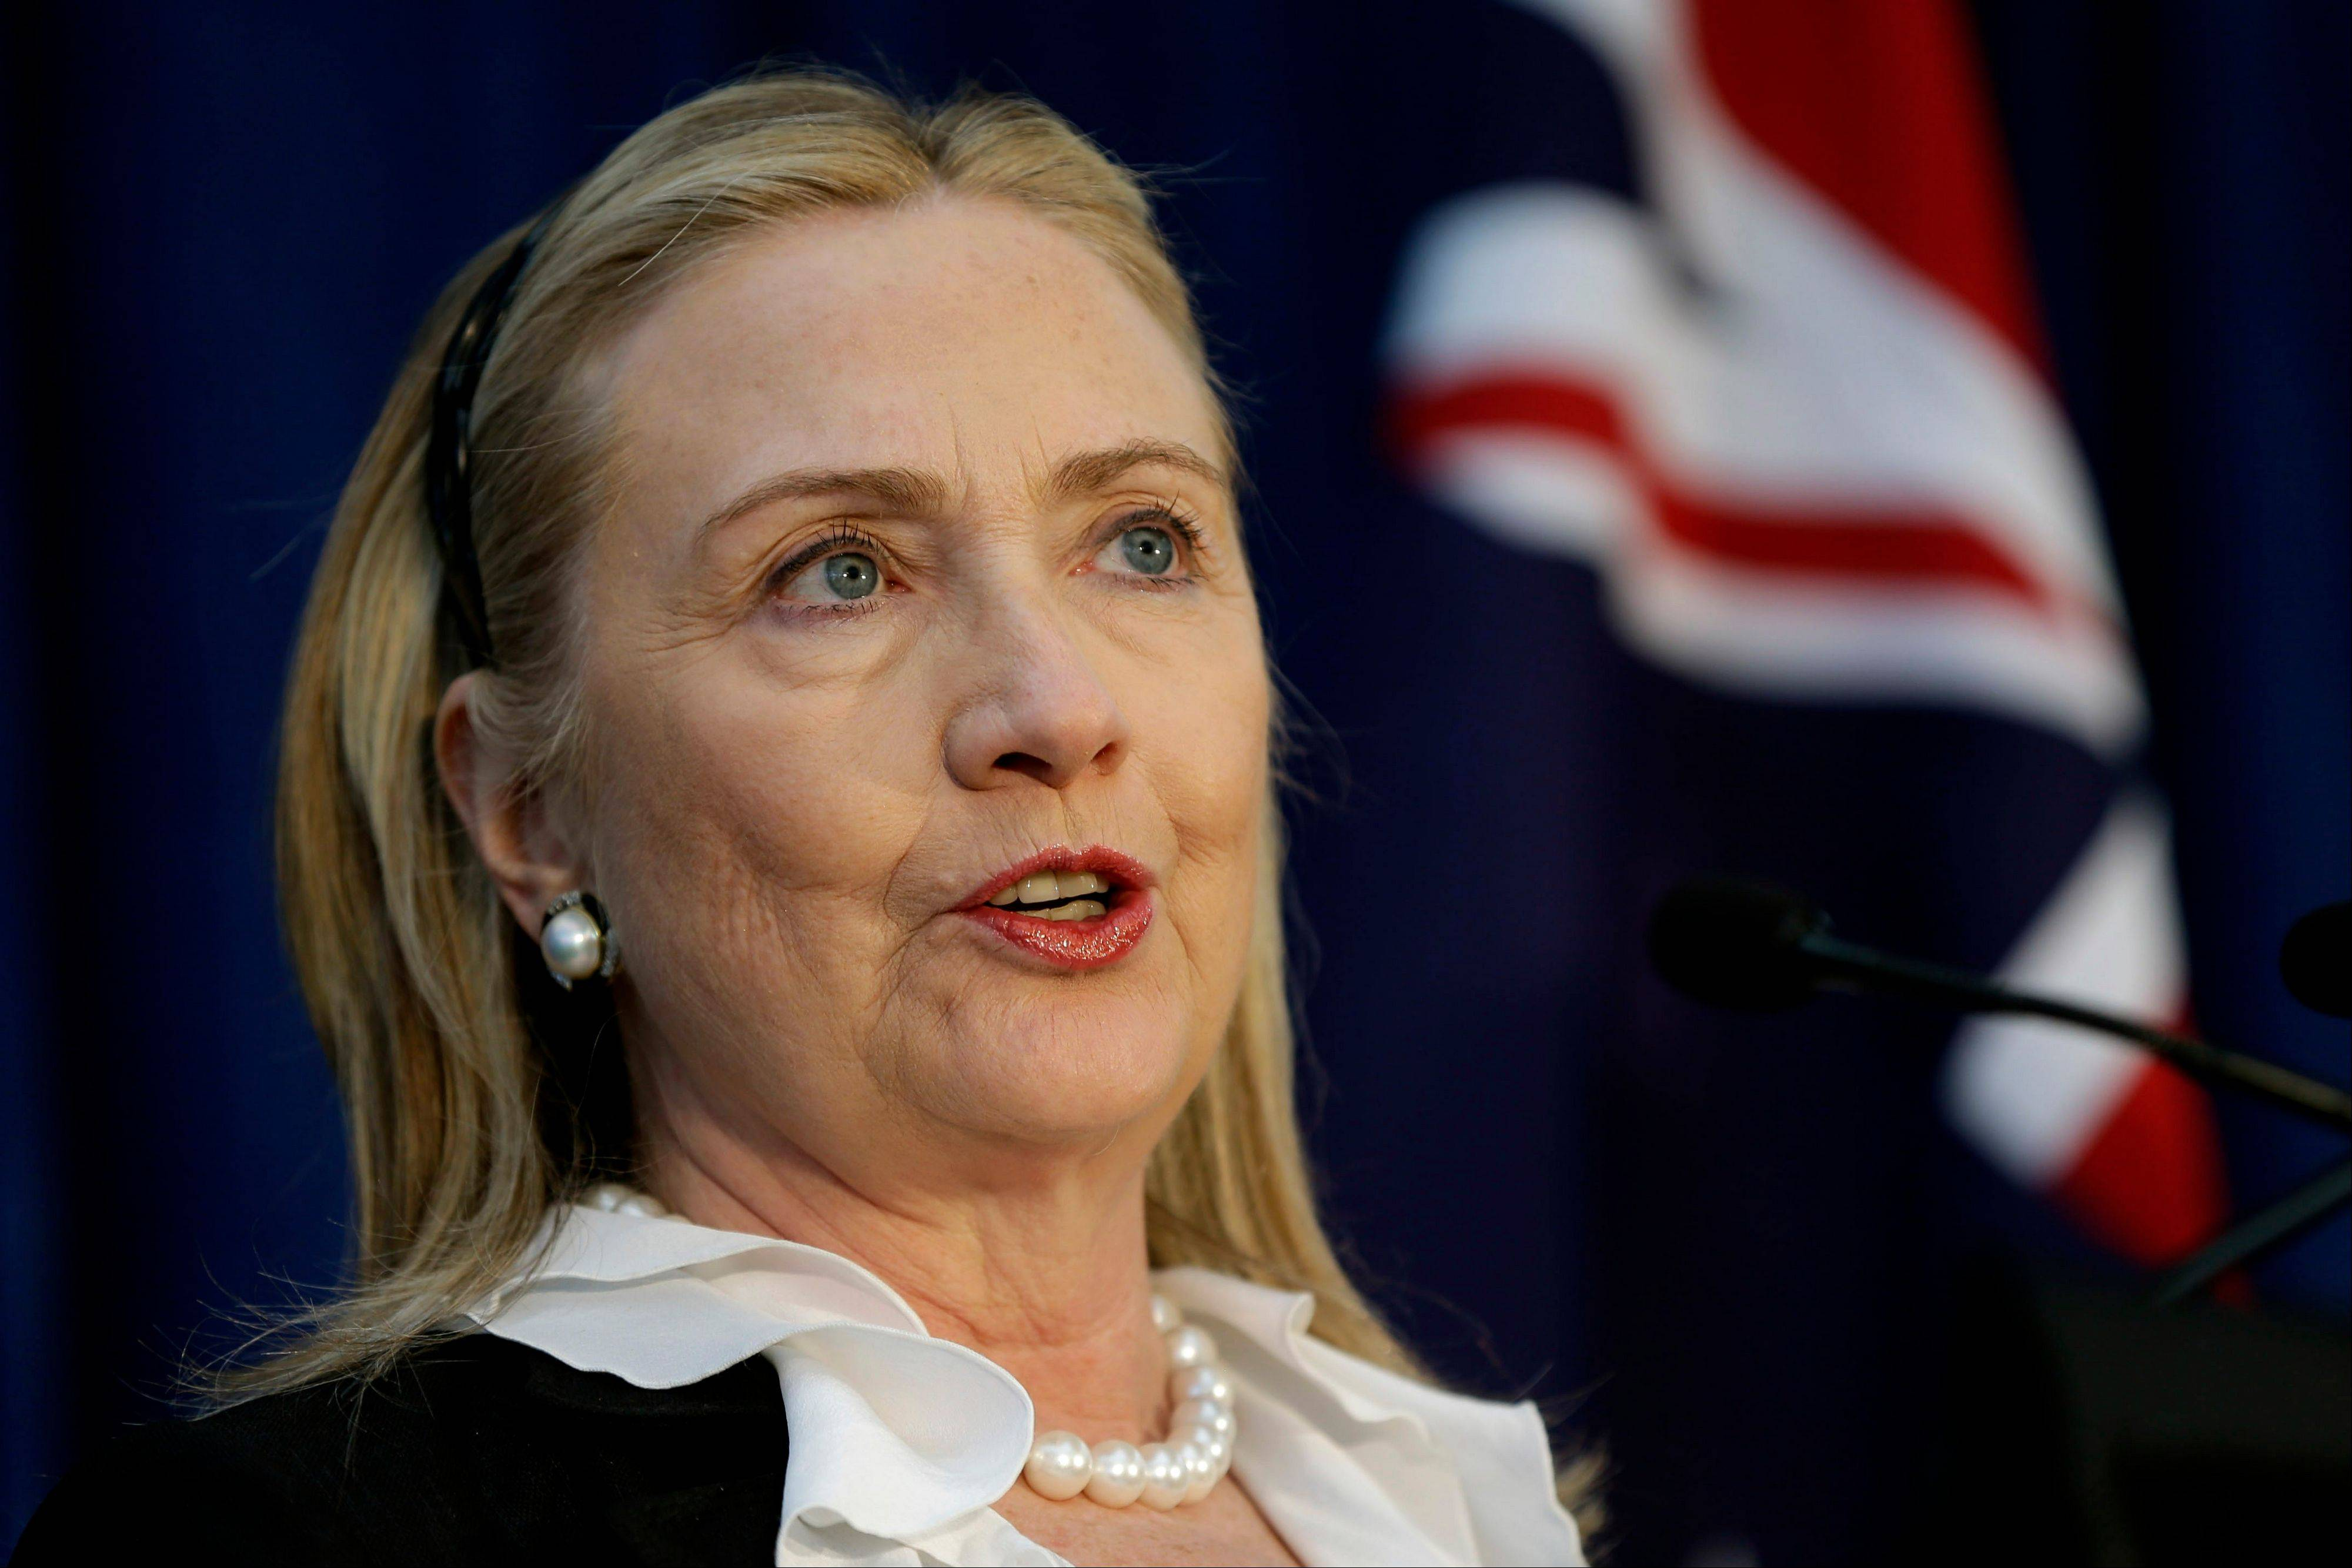 Secretary of State Hillary Rodham Clinton will testify Jan. 23 next week before the House Foreign Affairs Committee about the deadly Sept. 11 assault on the U.S. mission in Libya, Rep. Ed Royce, chairman of the panel, said Monday.